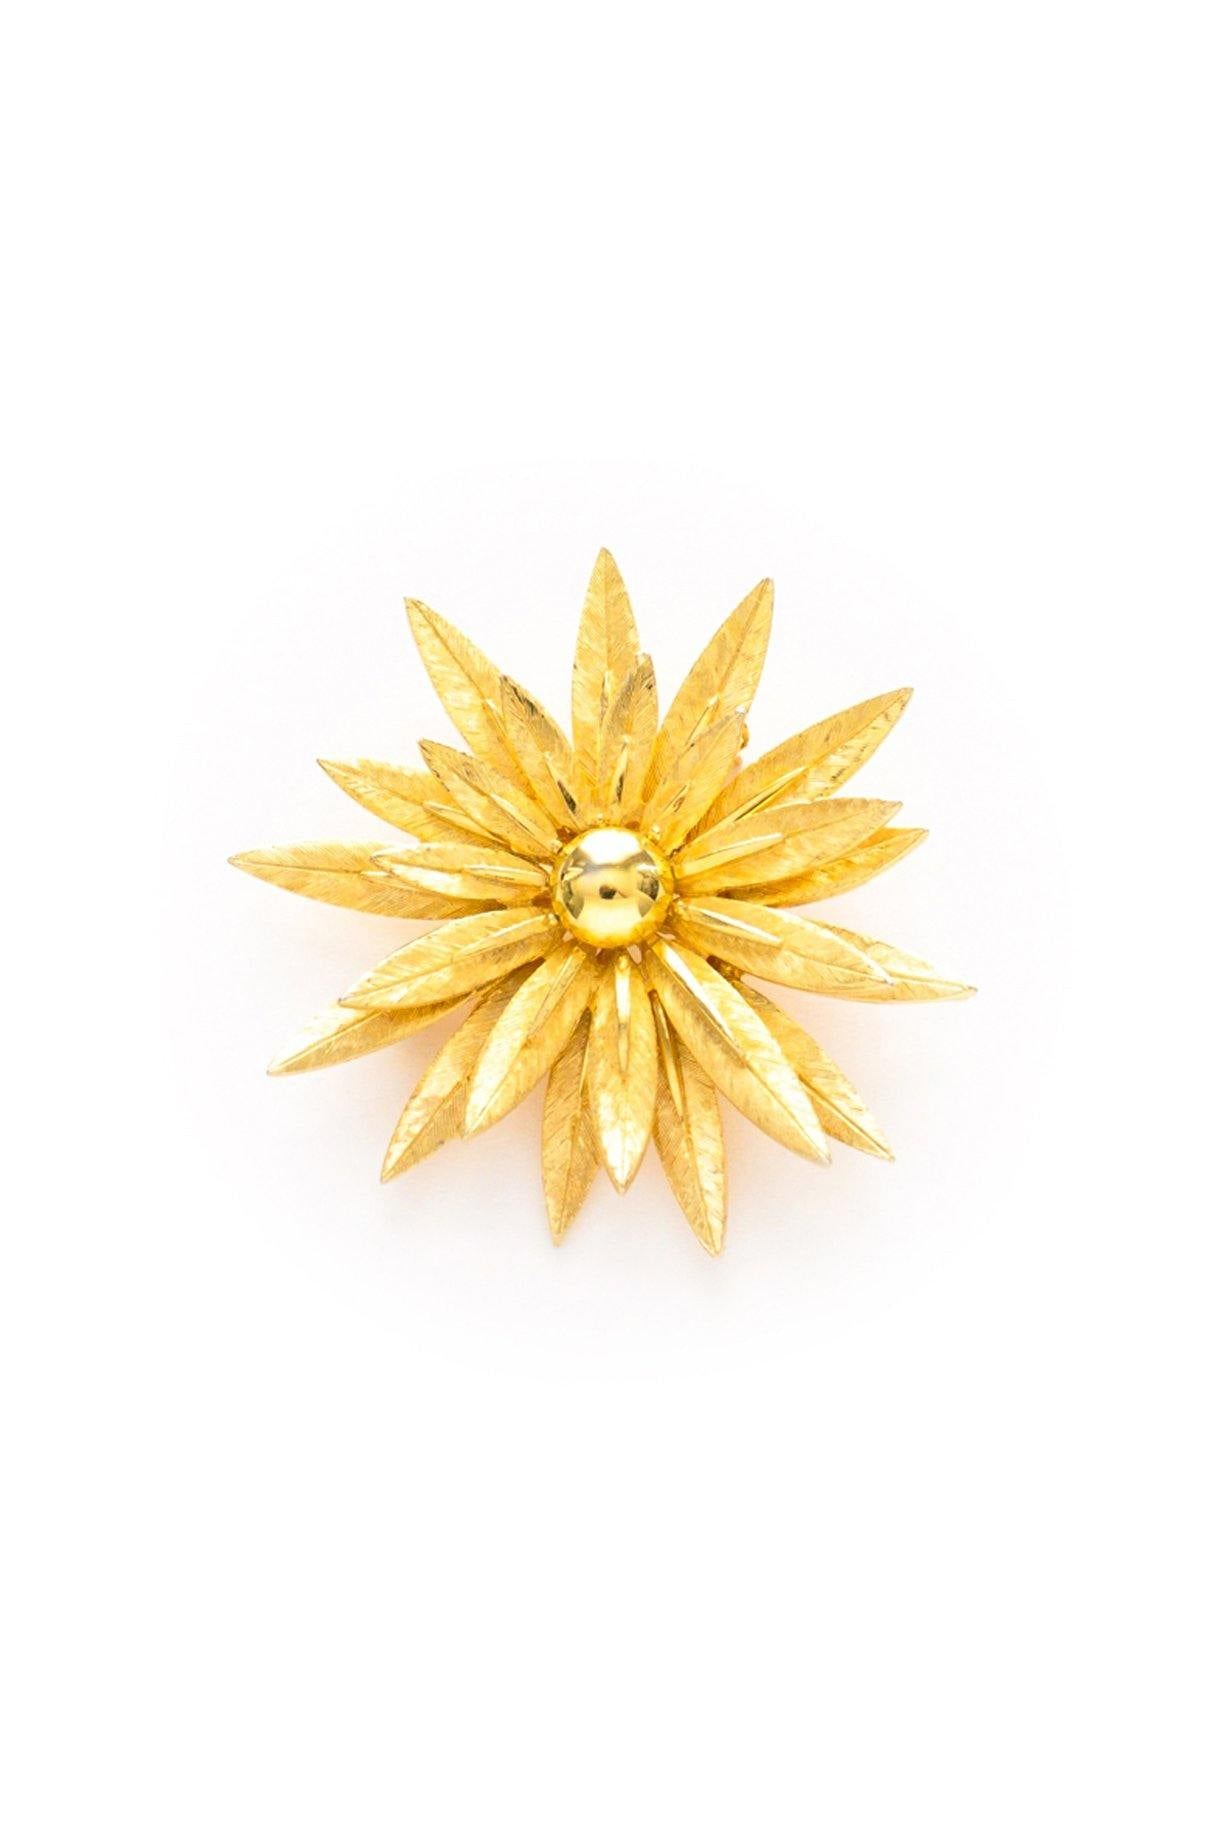 Statement gold burst brooch from Sweet & Spark.